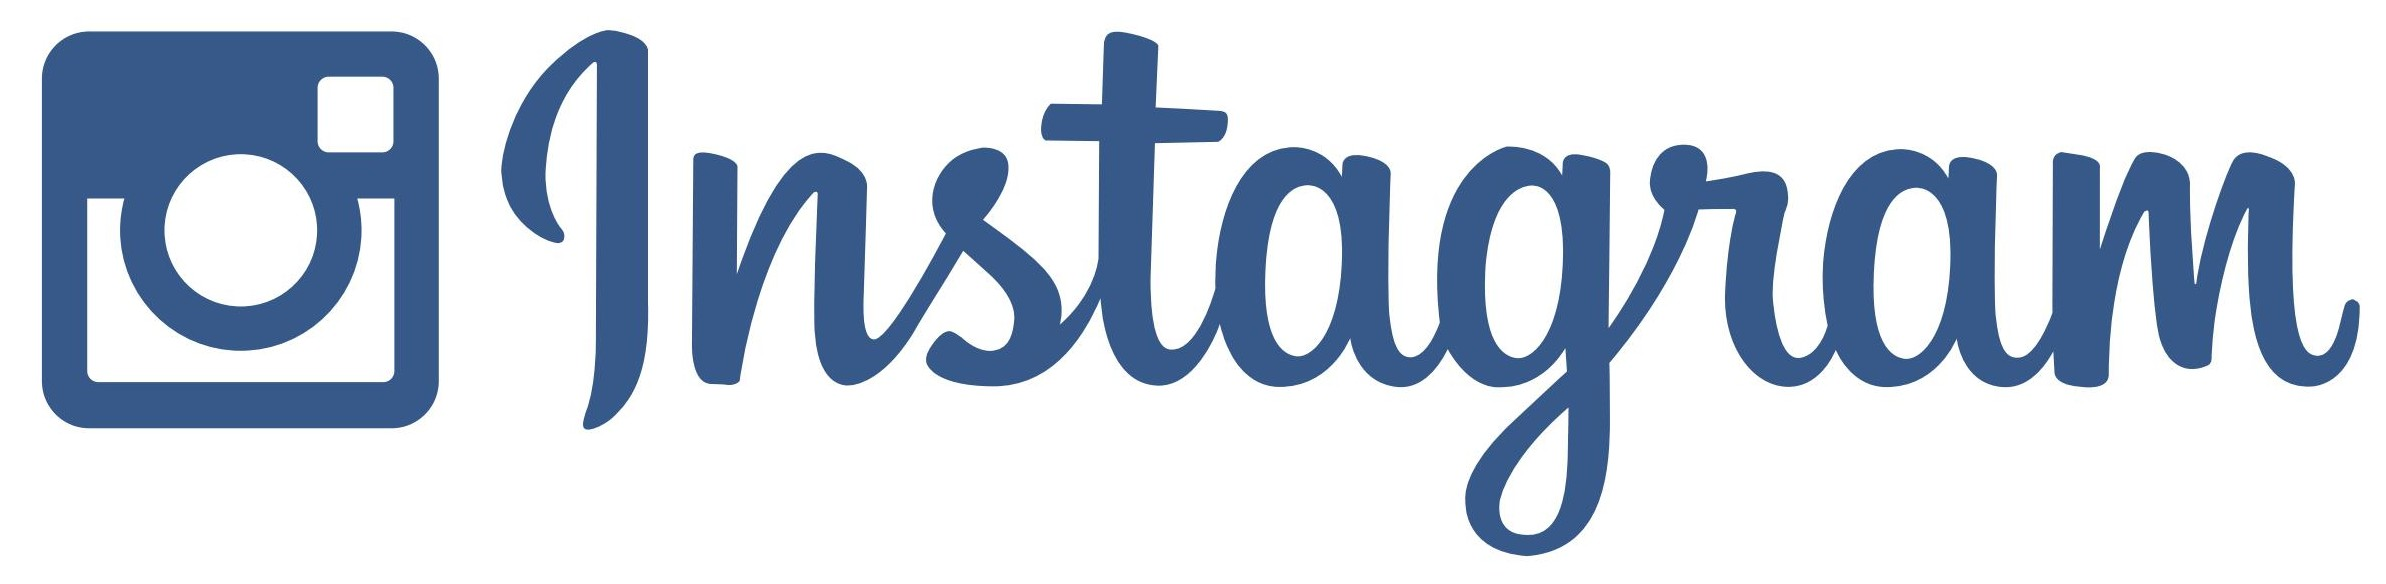 Instagram logo vector-2